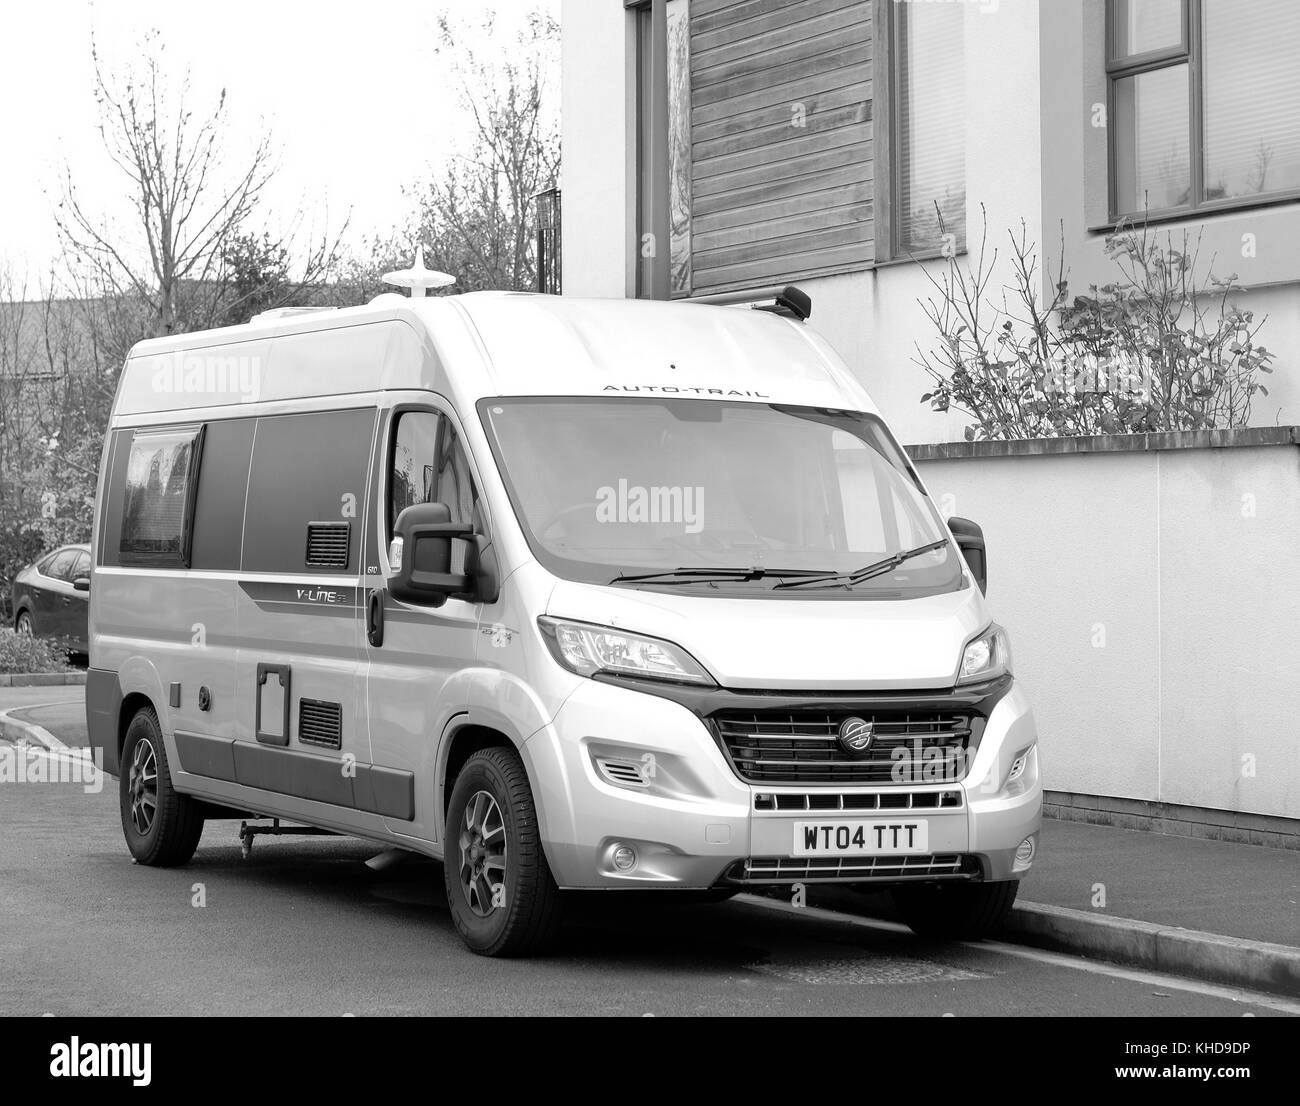 November 2017 - Camper van parked in a residential street, as the owner has no off street parking avilable in a - Stock Image